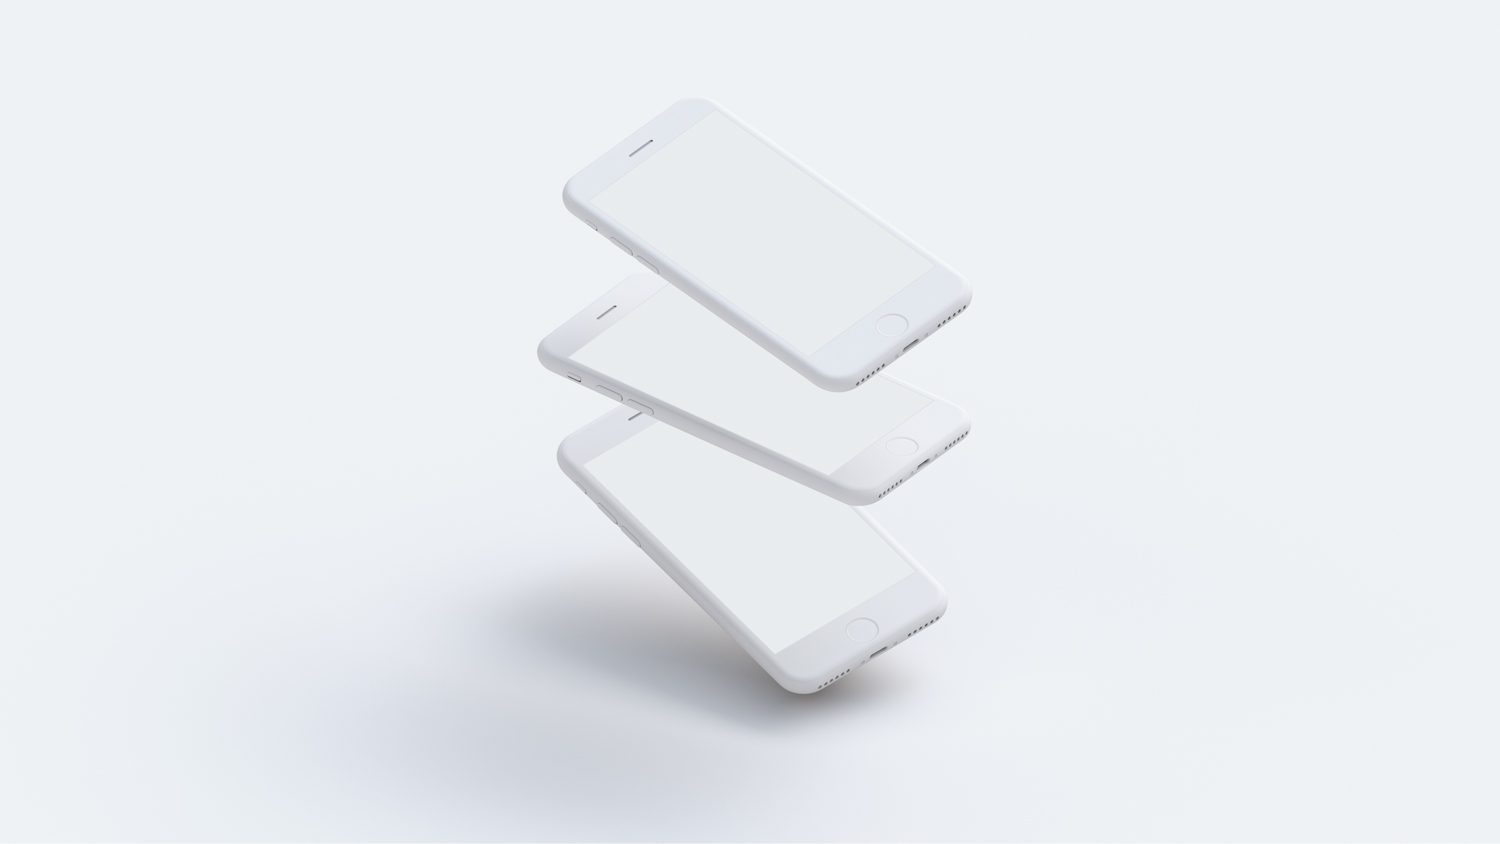 Set of White Clay iPhone Mockups